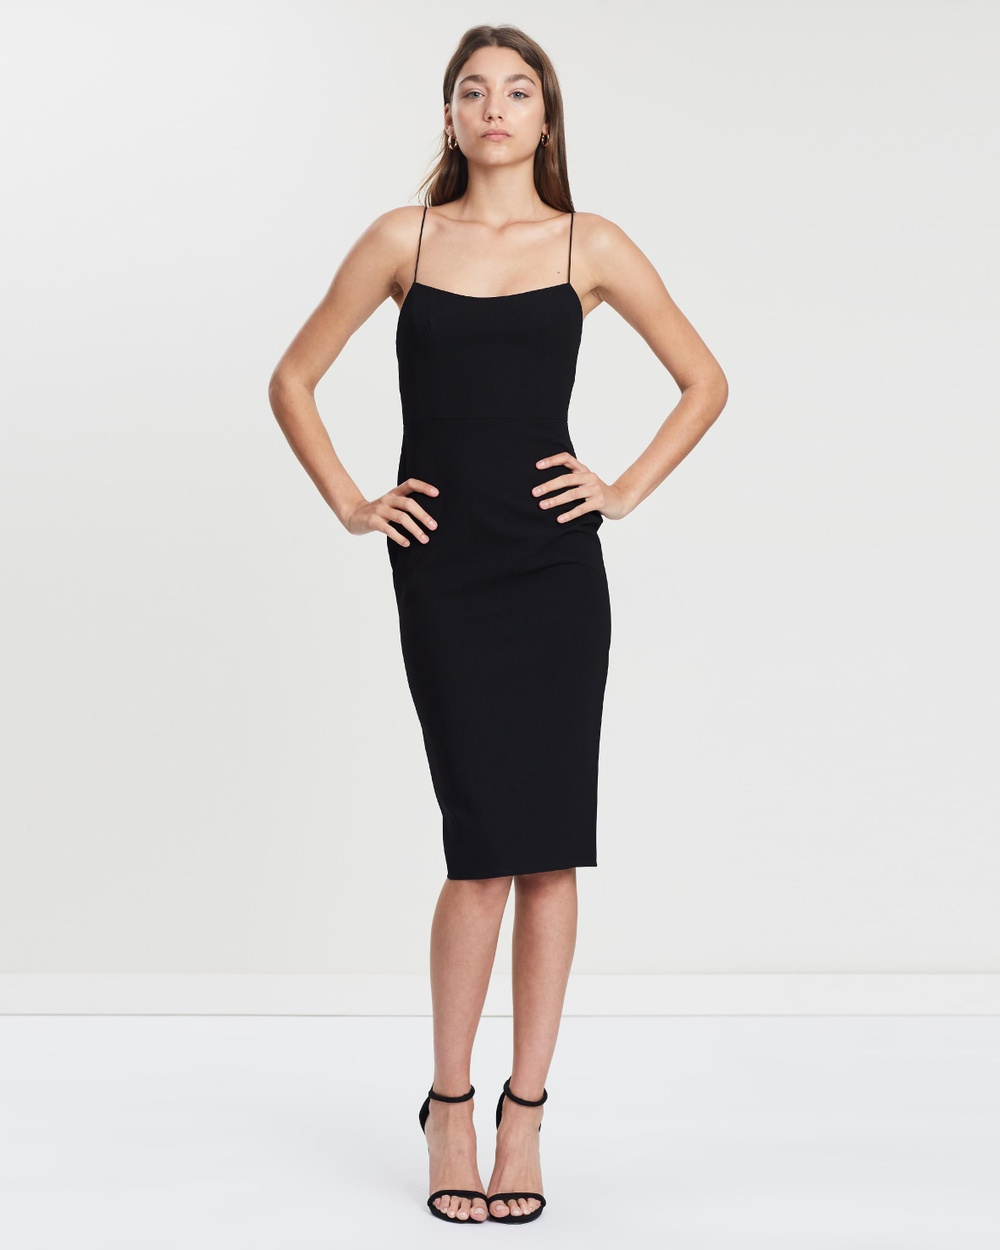 Photo of Alex Perry Black Zane Stretch Singlet Lady Dress - buy Alex Perry dresses on sale online